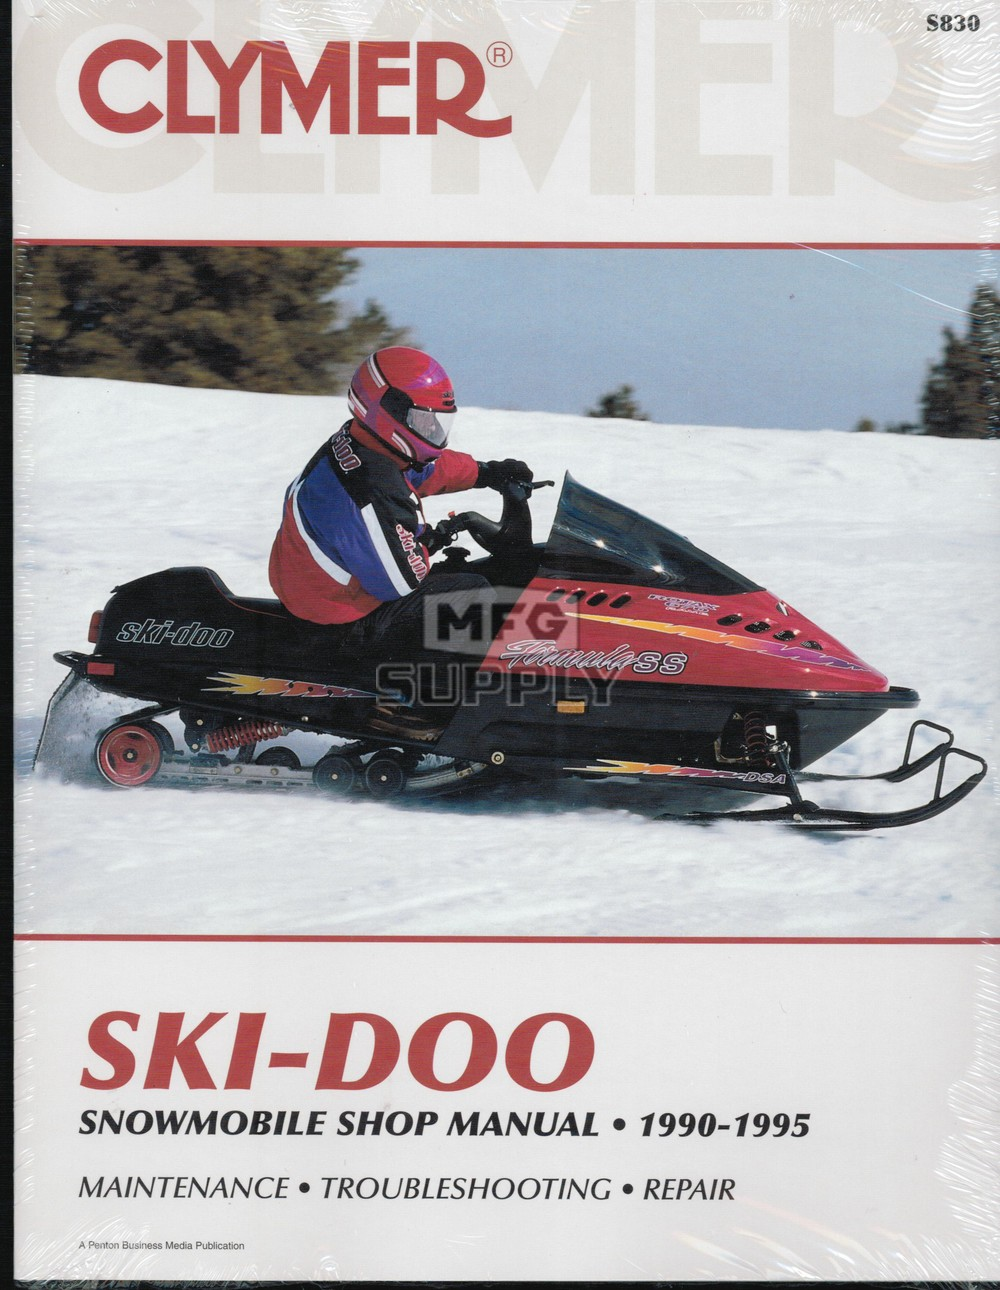 cs830 90 95 ski doo snowmobile shop manual snowmobile parts rh mfgsupply com repair manual ski doo snowmobile ski doo snowmobile manuals pdf